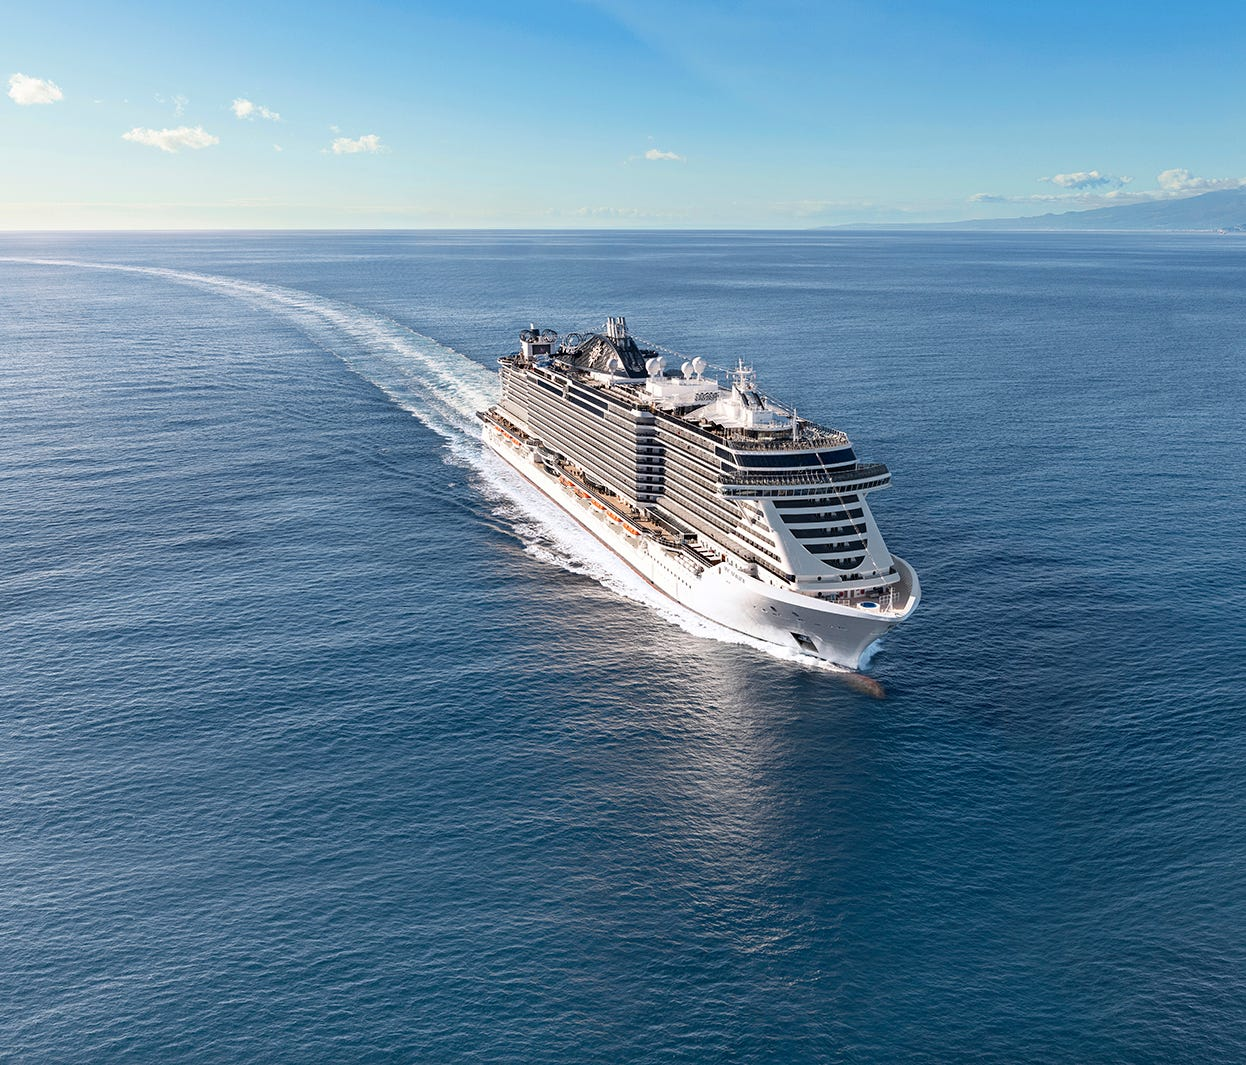 18. MSC Seaview. Christened in June 2018, this is a sister to MSC Seaside that also measures about 153,500 tons.